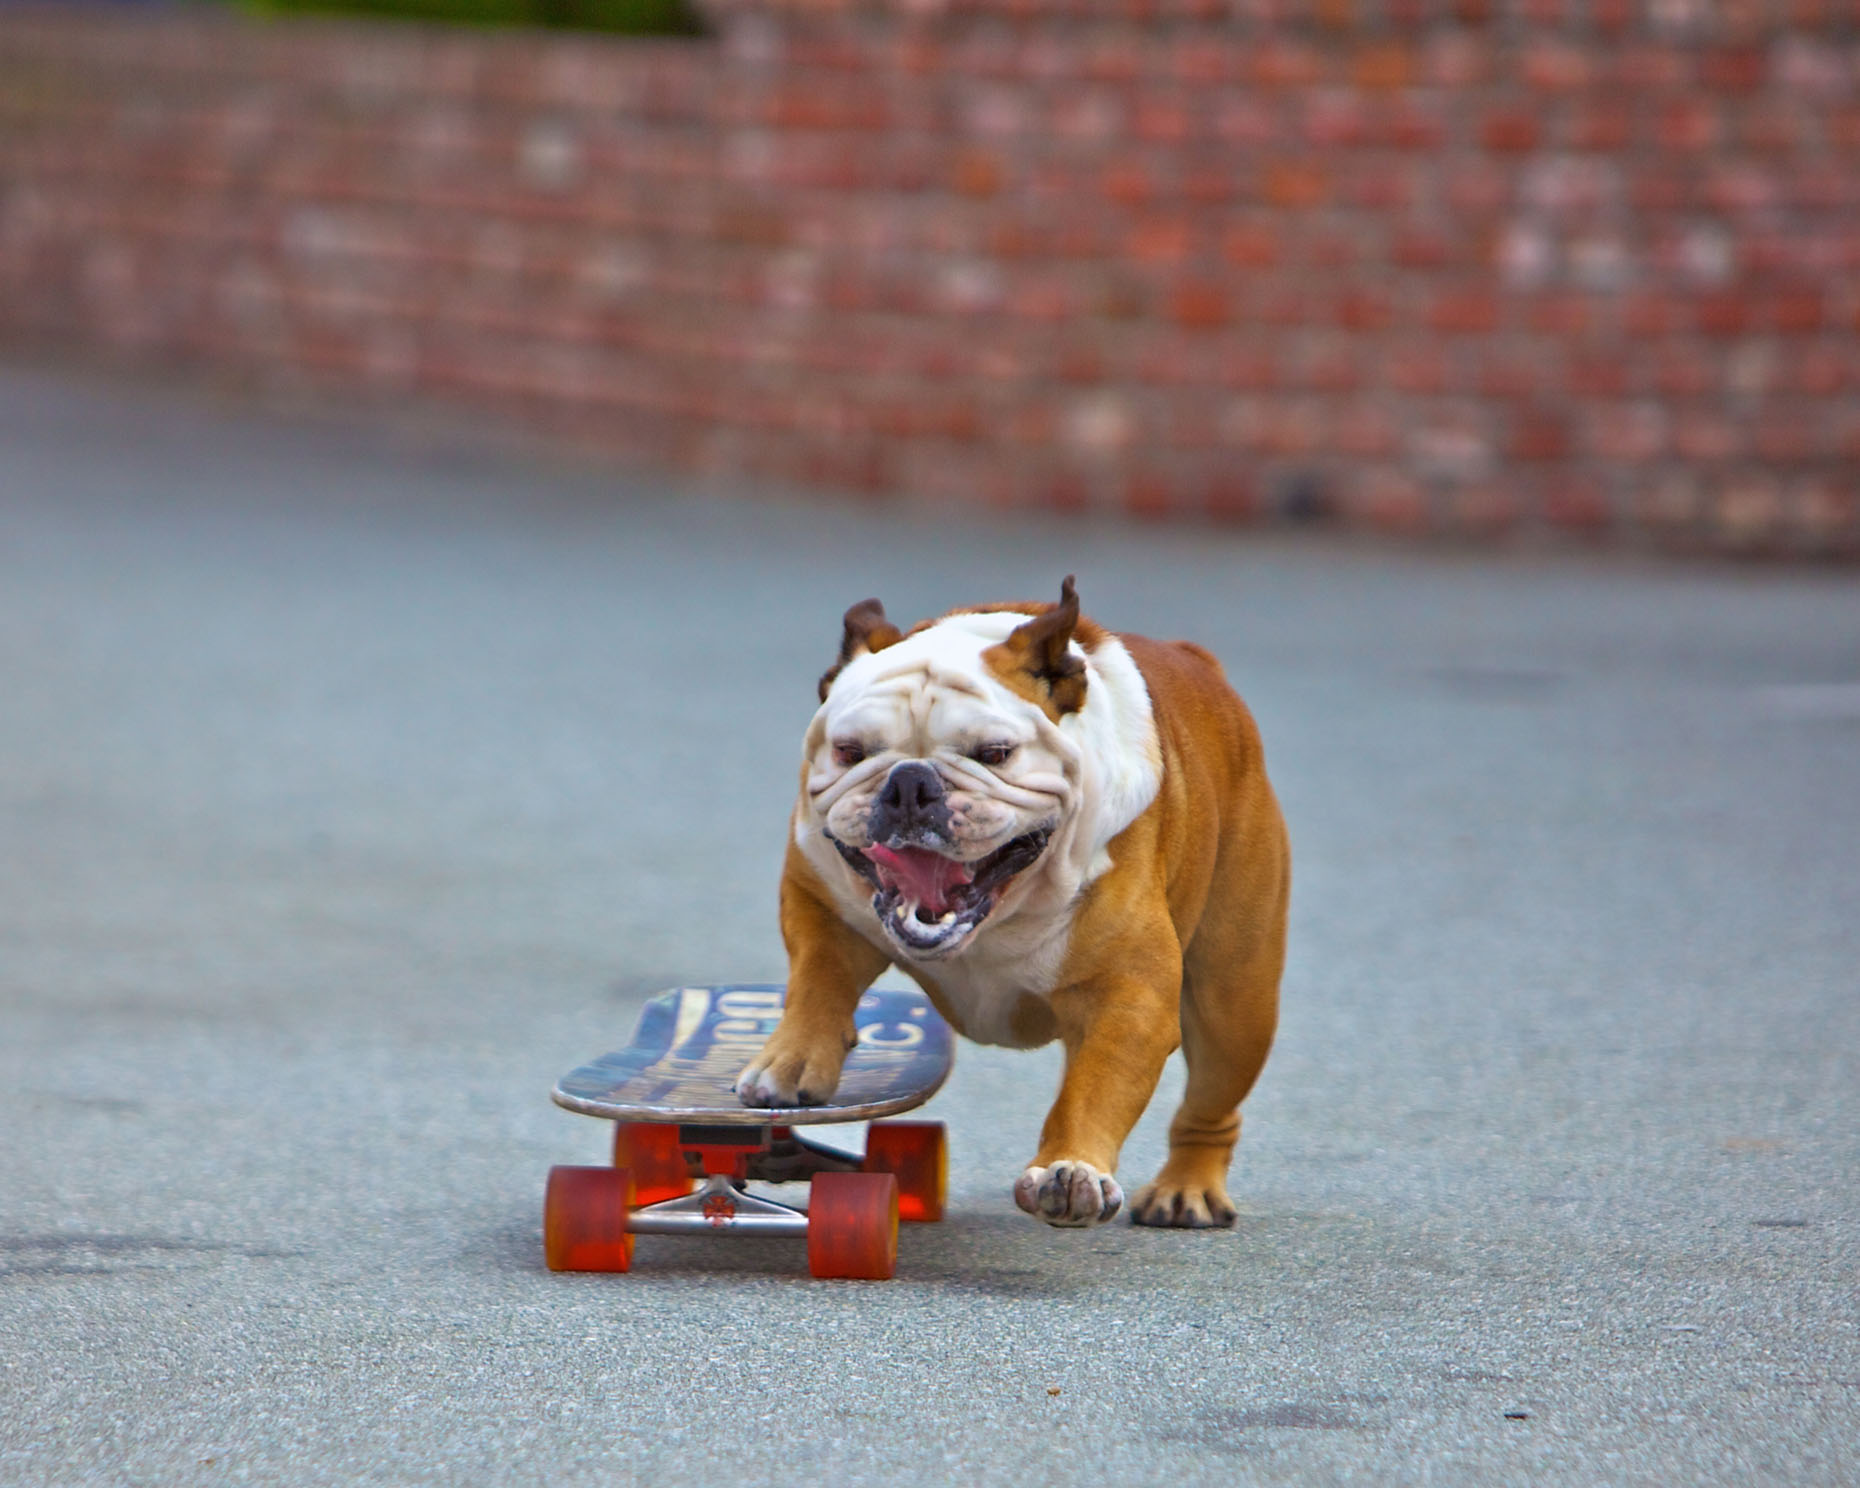 Dog and Pet Photography | Bulldog on a Skateboard by Mark Rogers